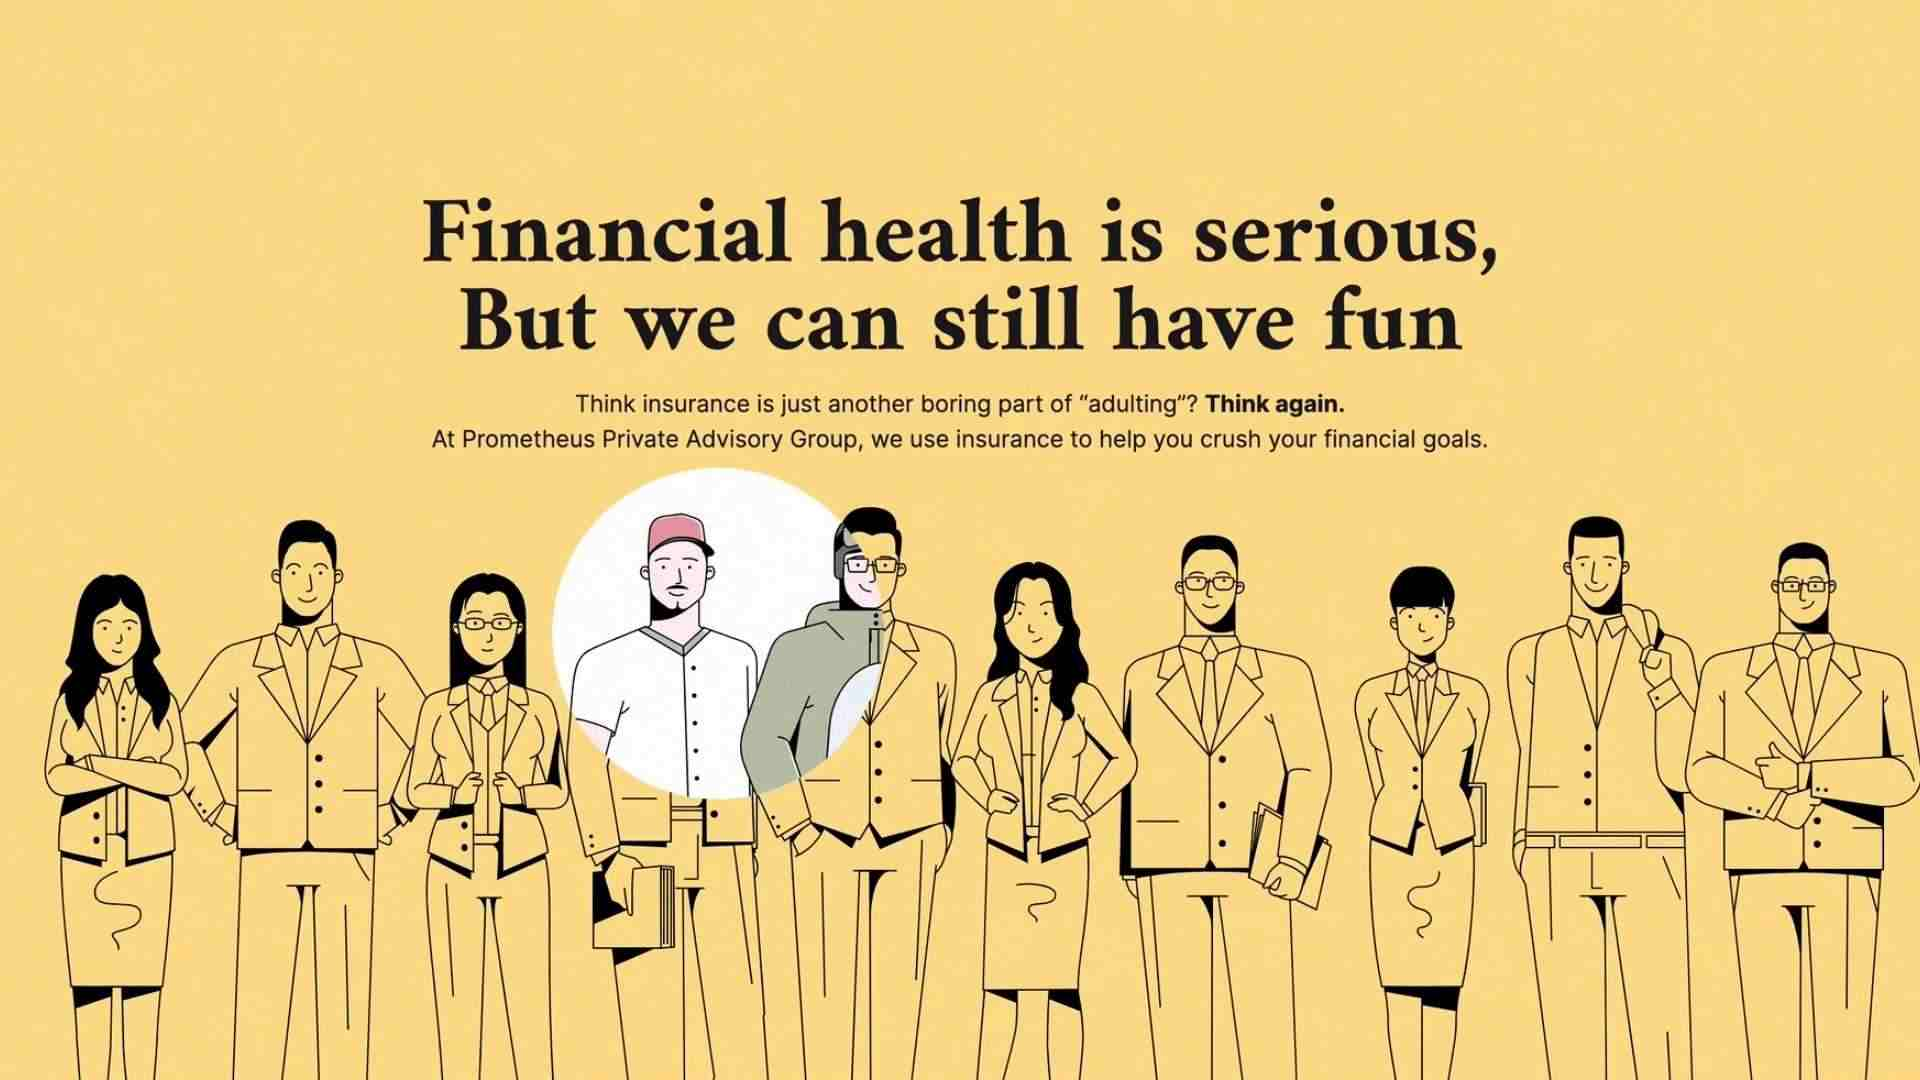 Financial health is serious, but we can still have fan in Digital Panda